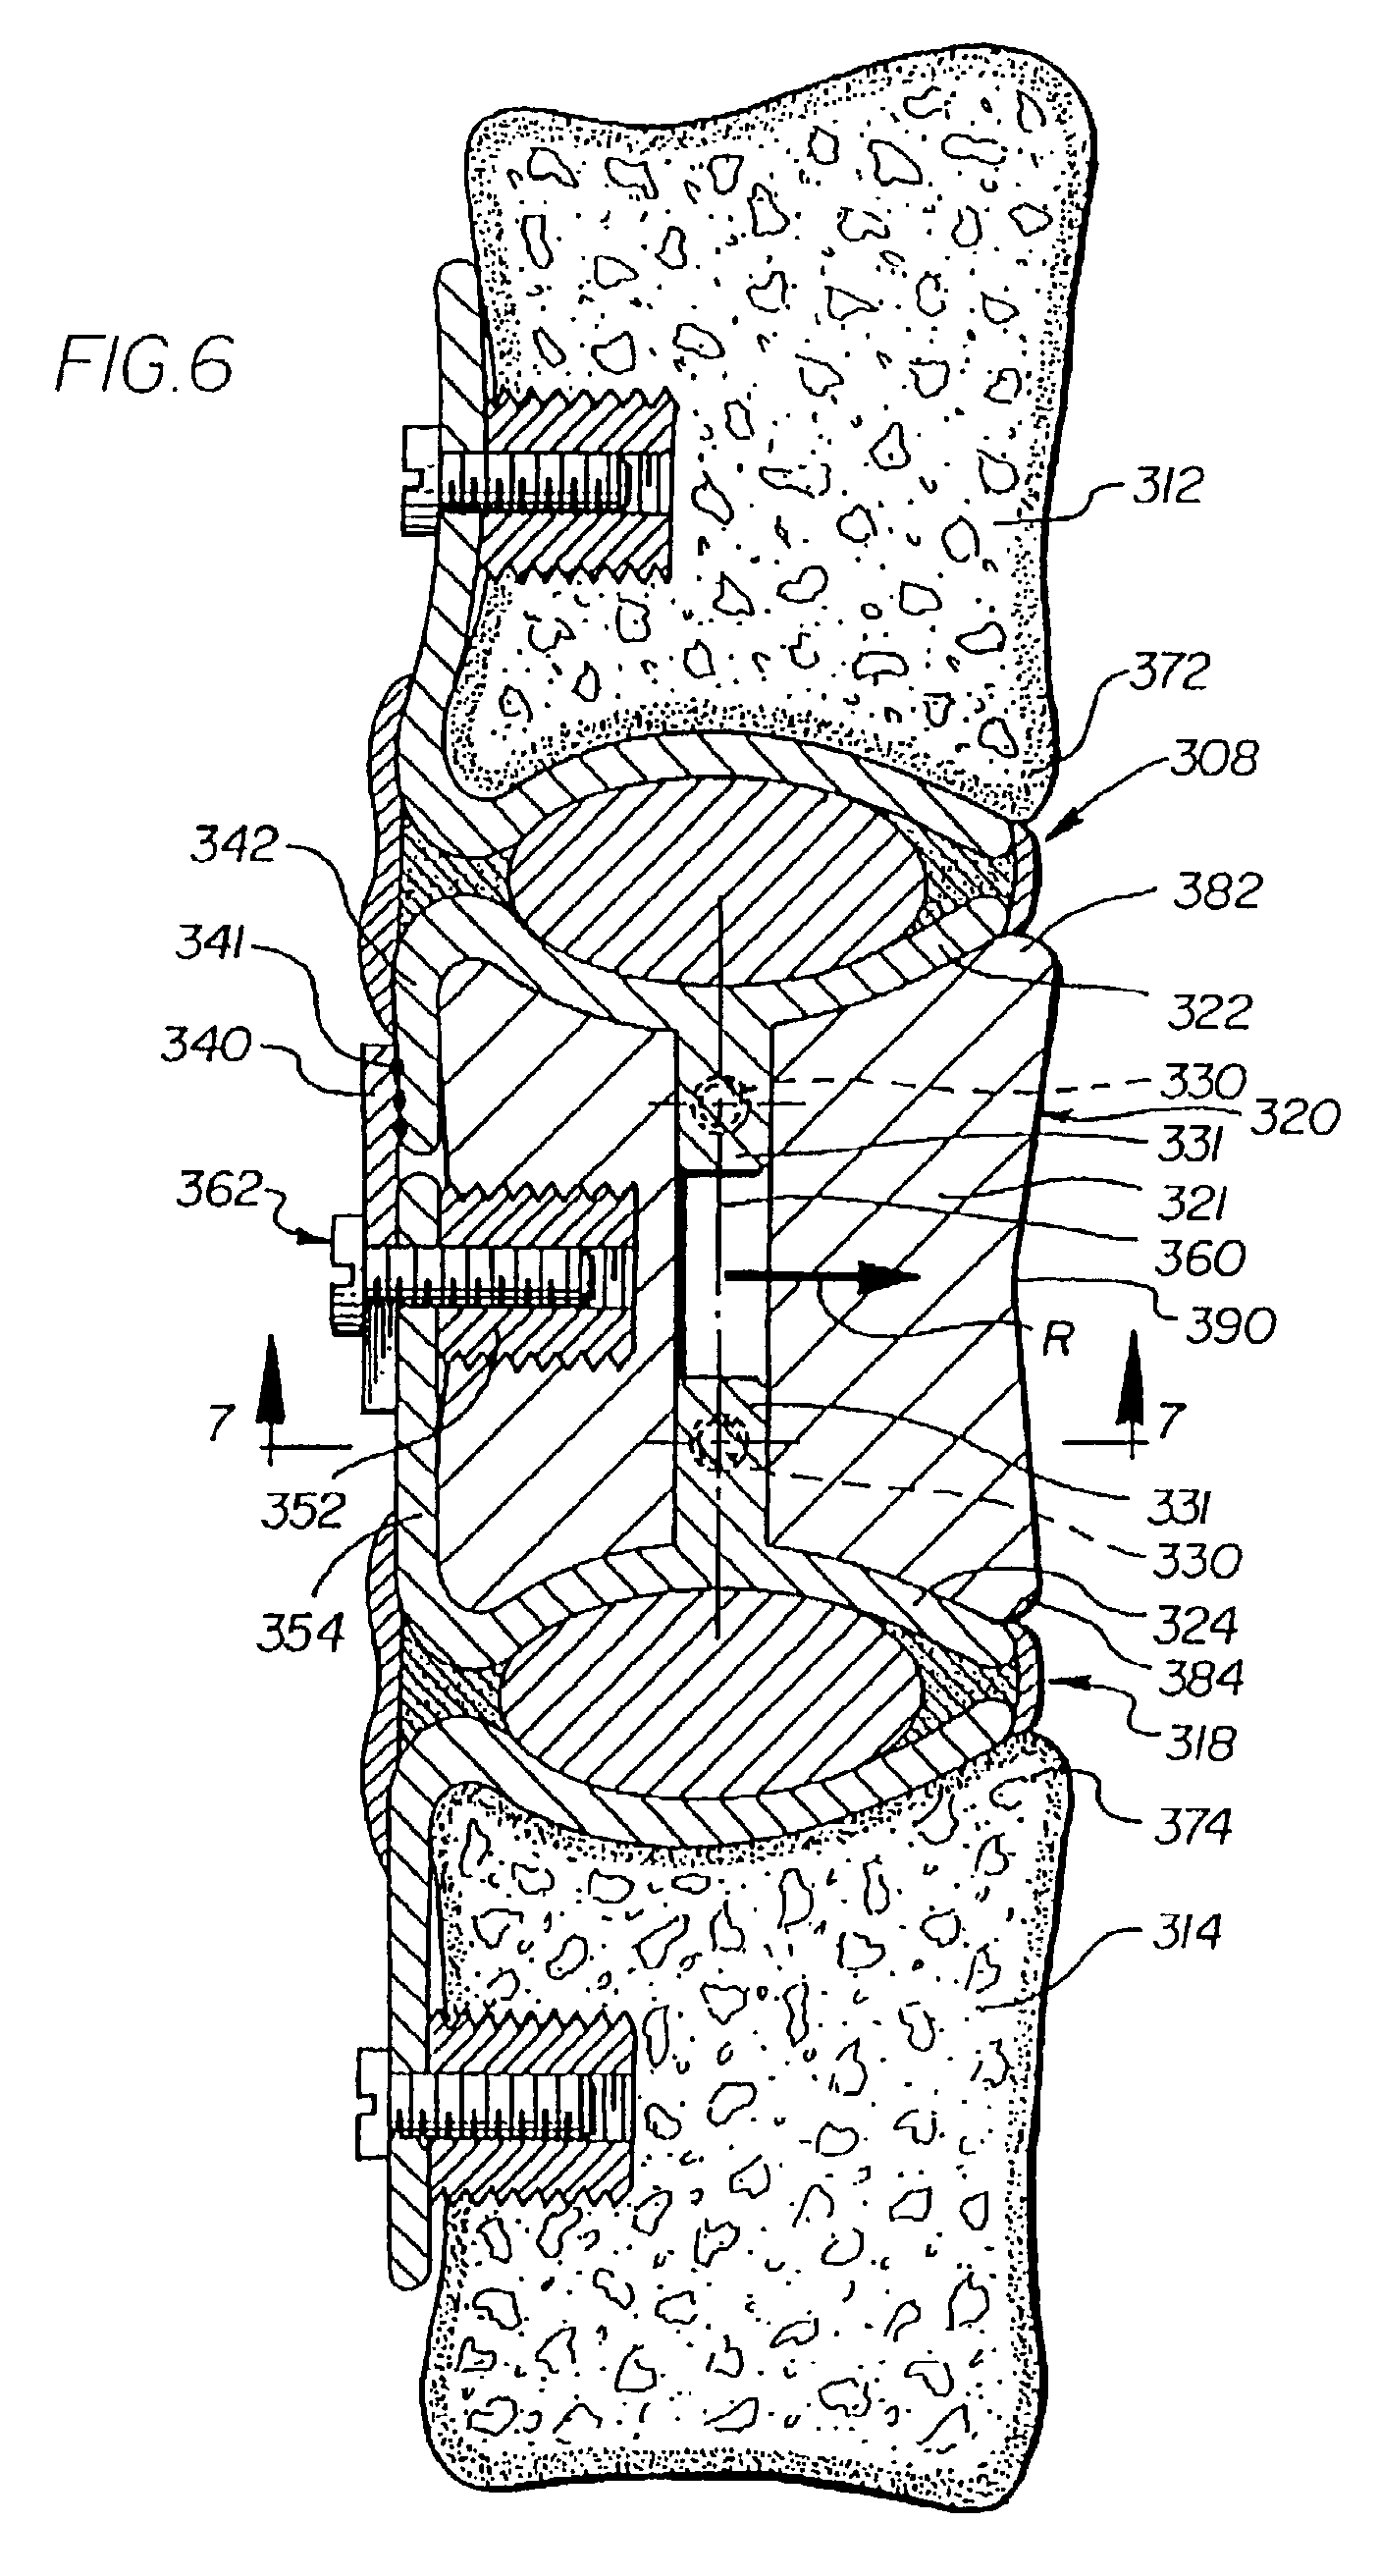 spinous prothesis Prothesis for the replacement of a  holes 150 may be provided in prosthetic spinous process 535 and the two prosthetic transverse processes 540 so as to.